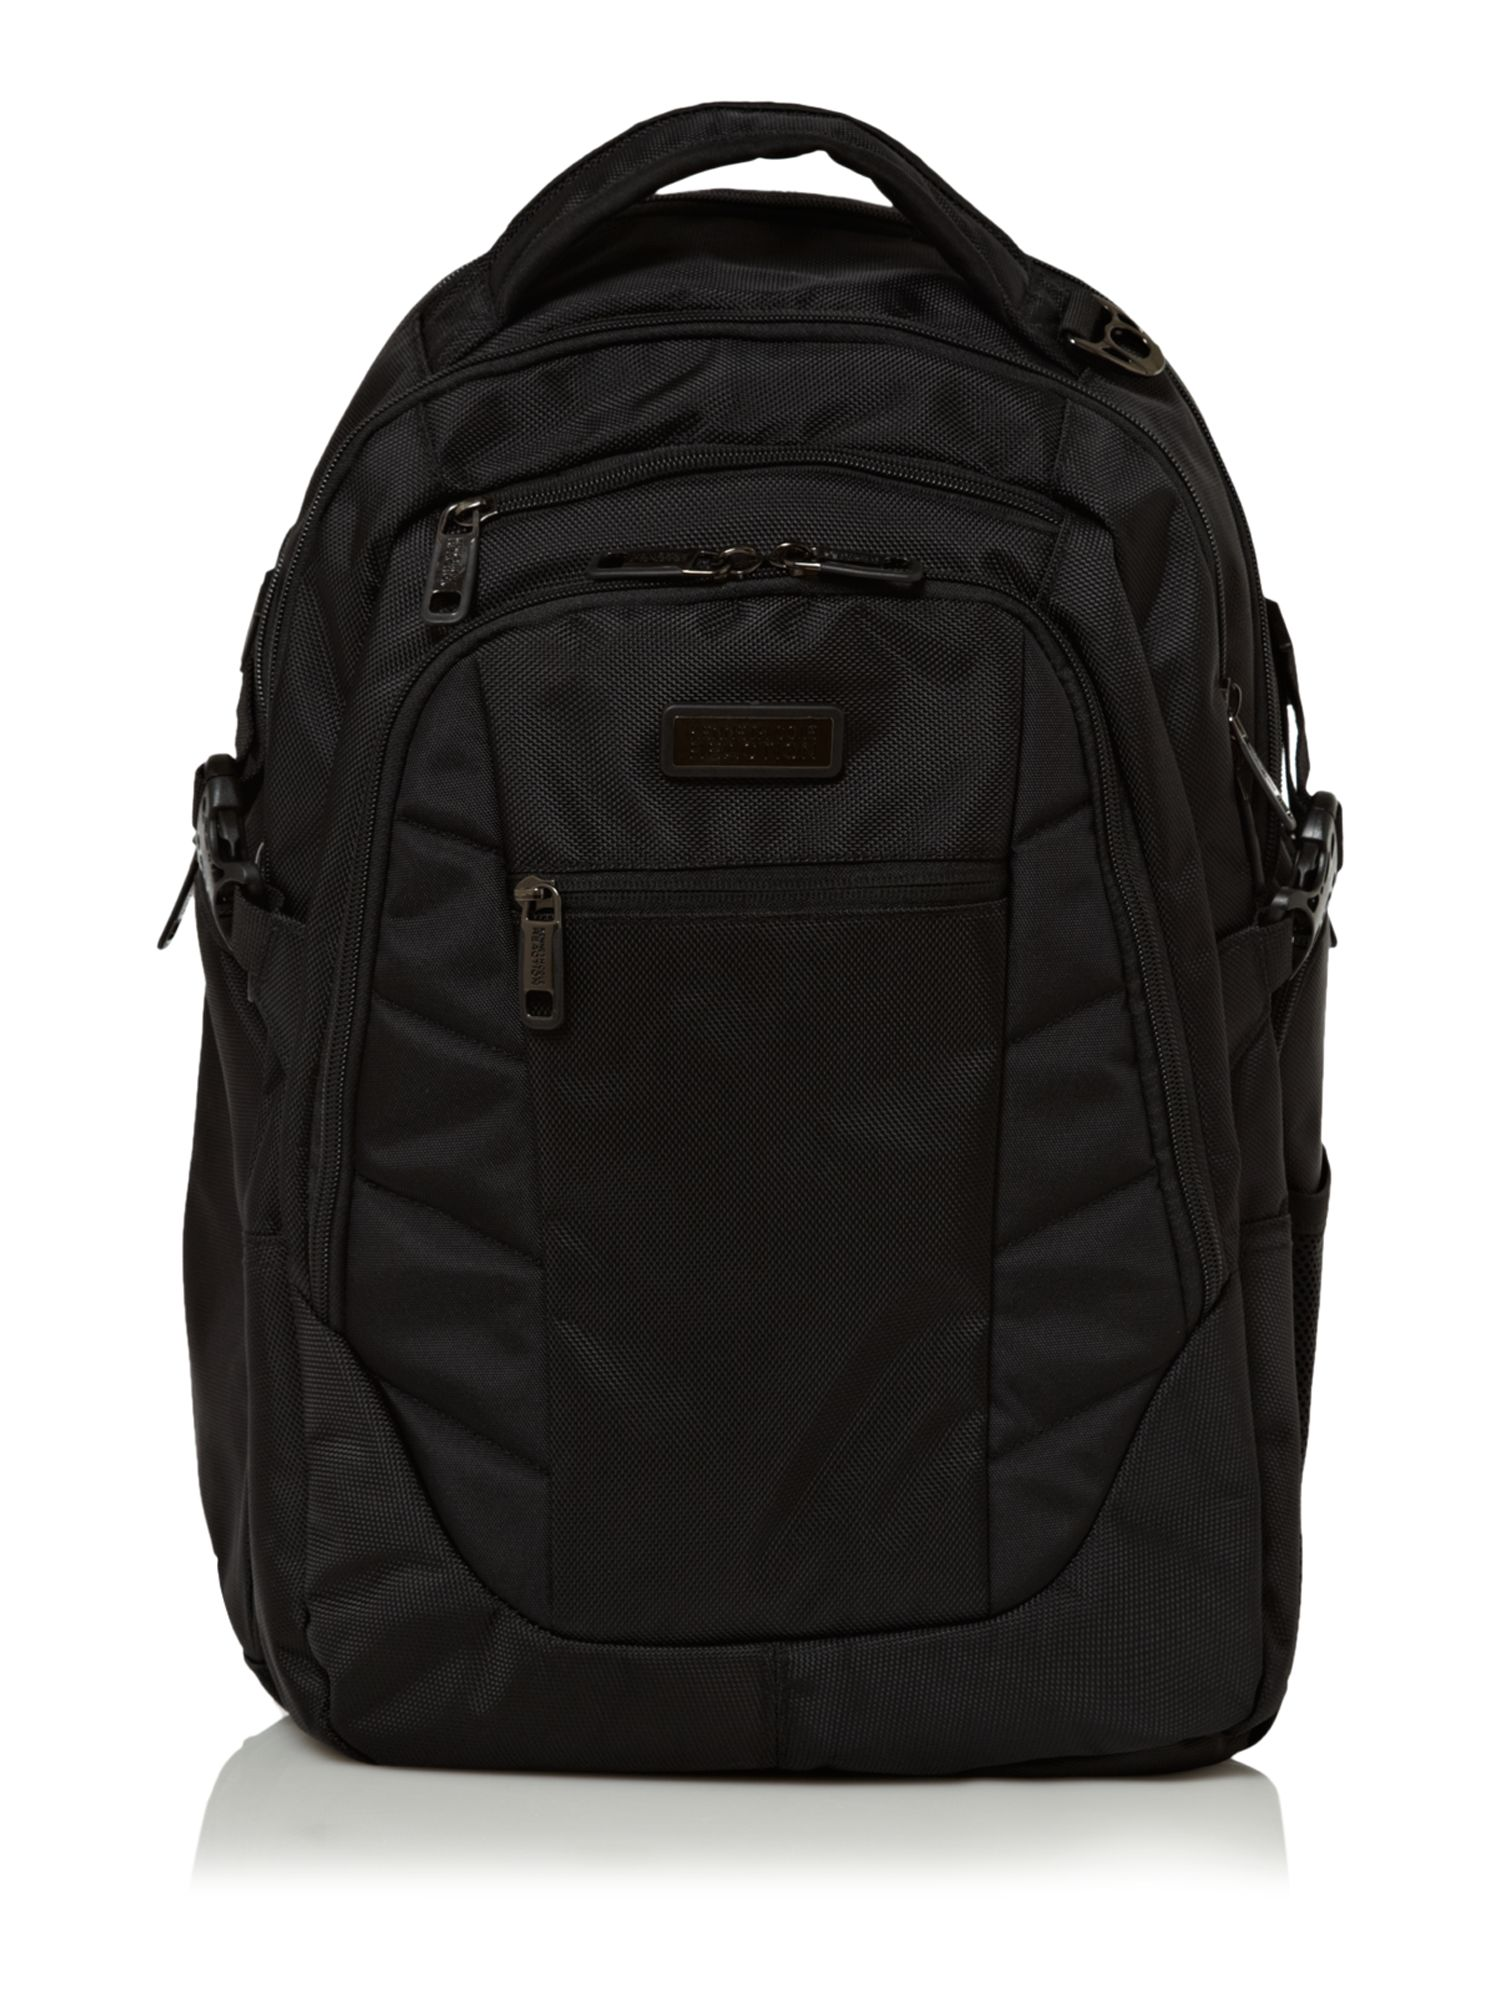 4.8 Dbl Gusset Backpack 17.3 computer